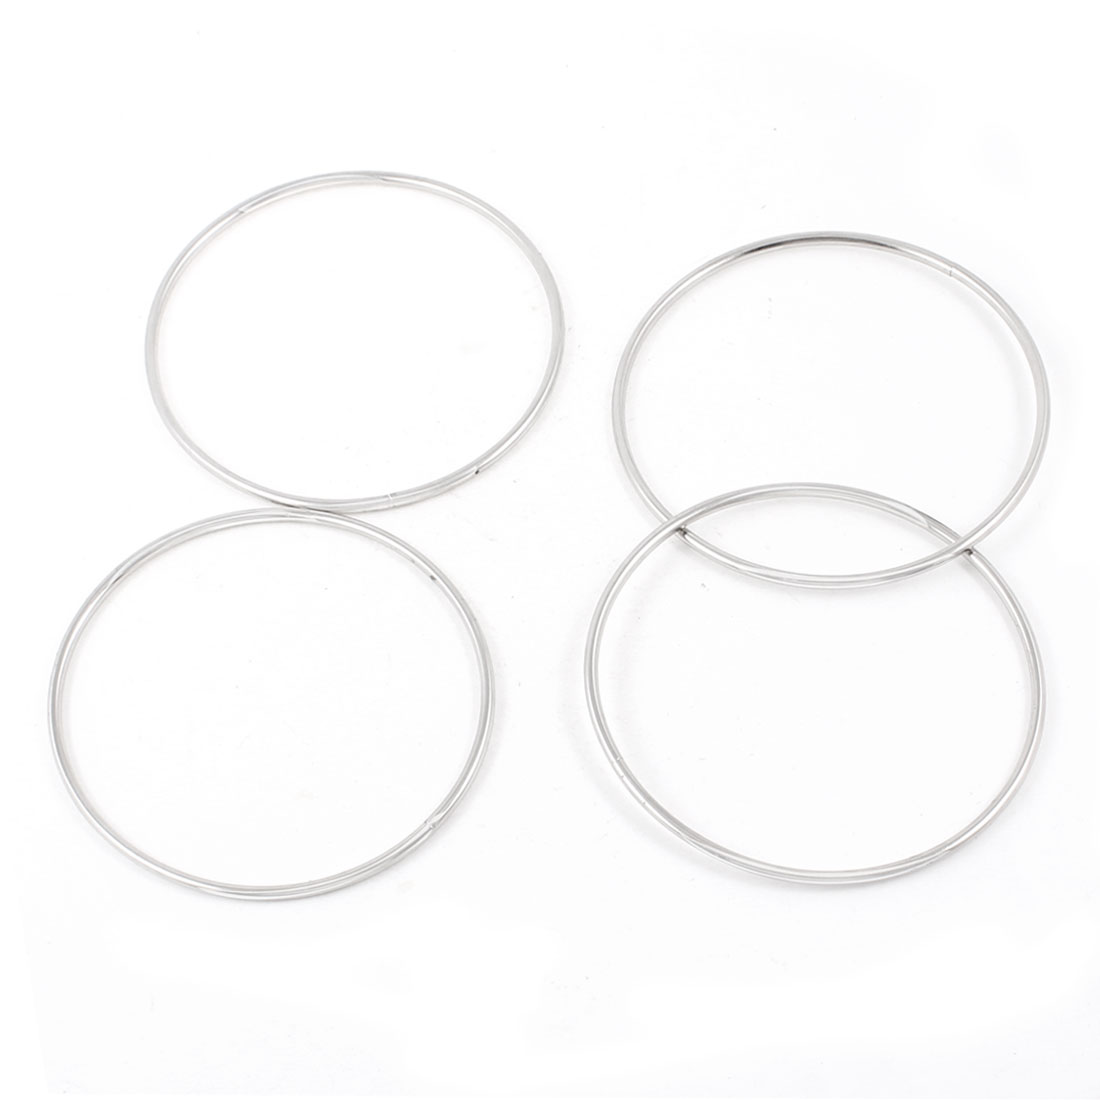 Comedians Magic Trick 4 Four Connected Linking Metal Rings Sets